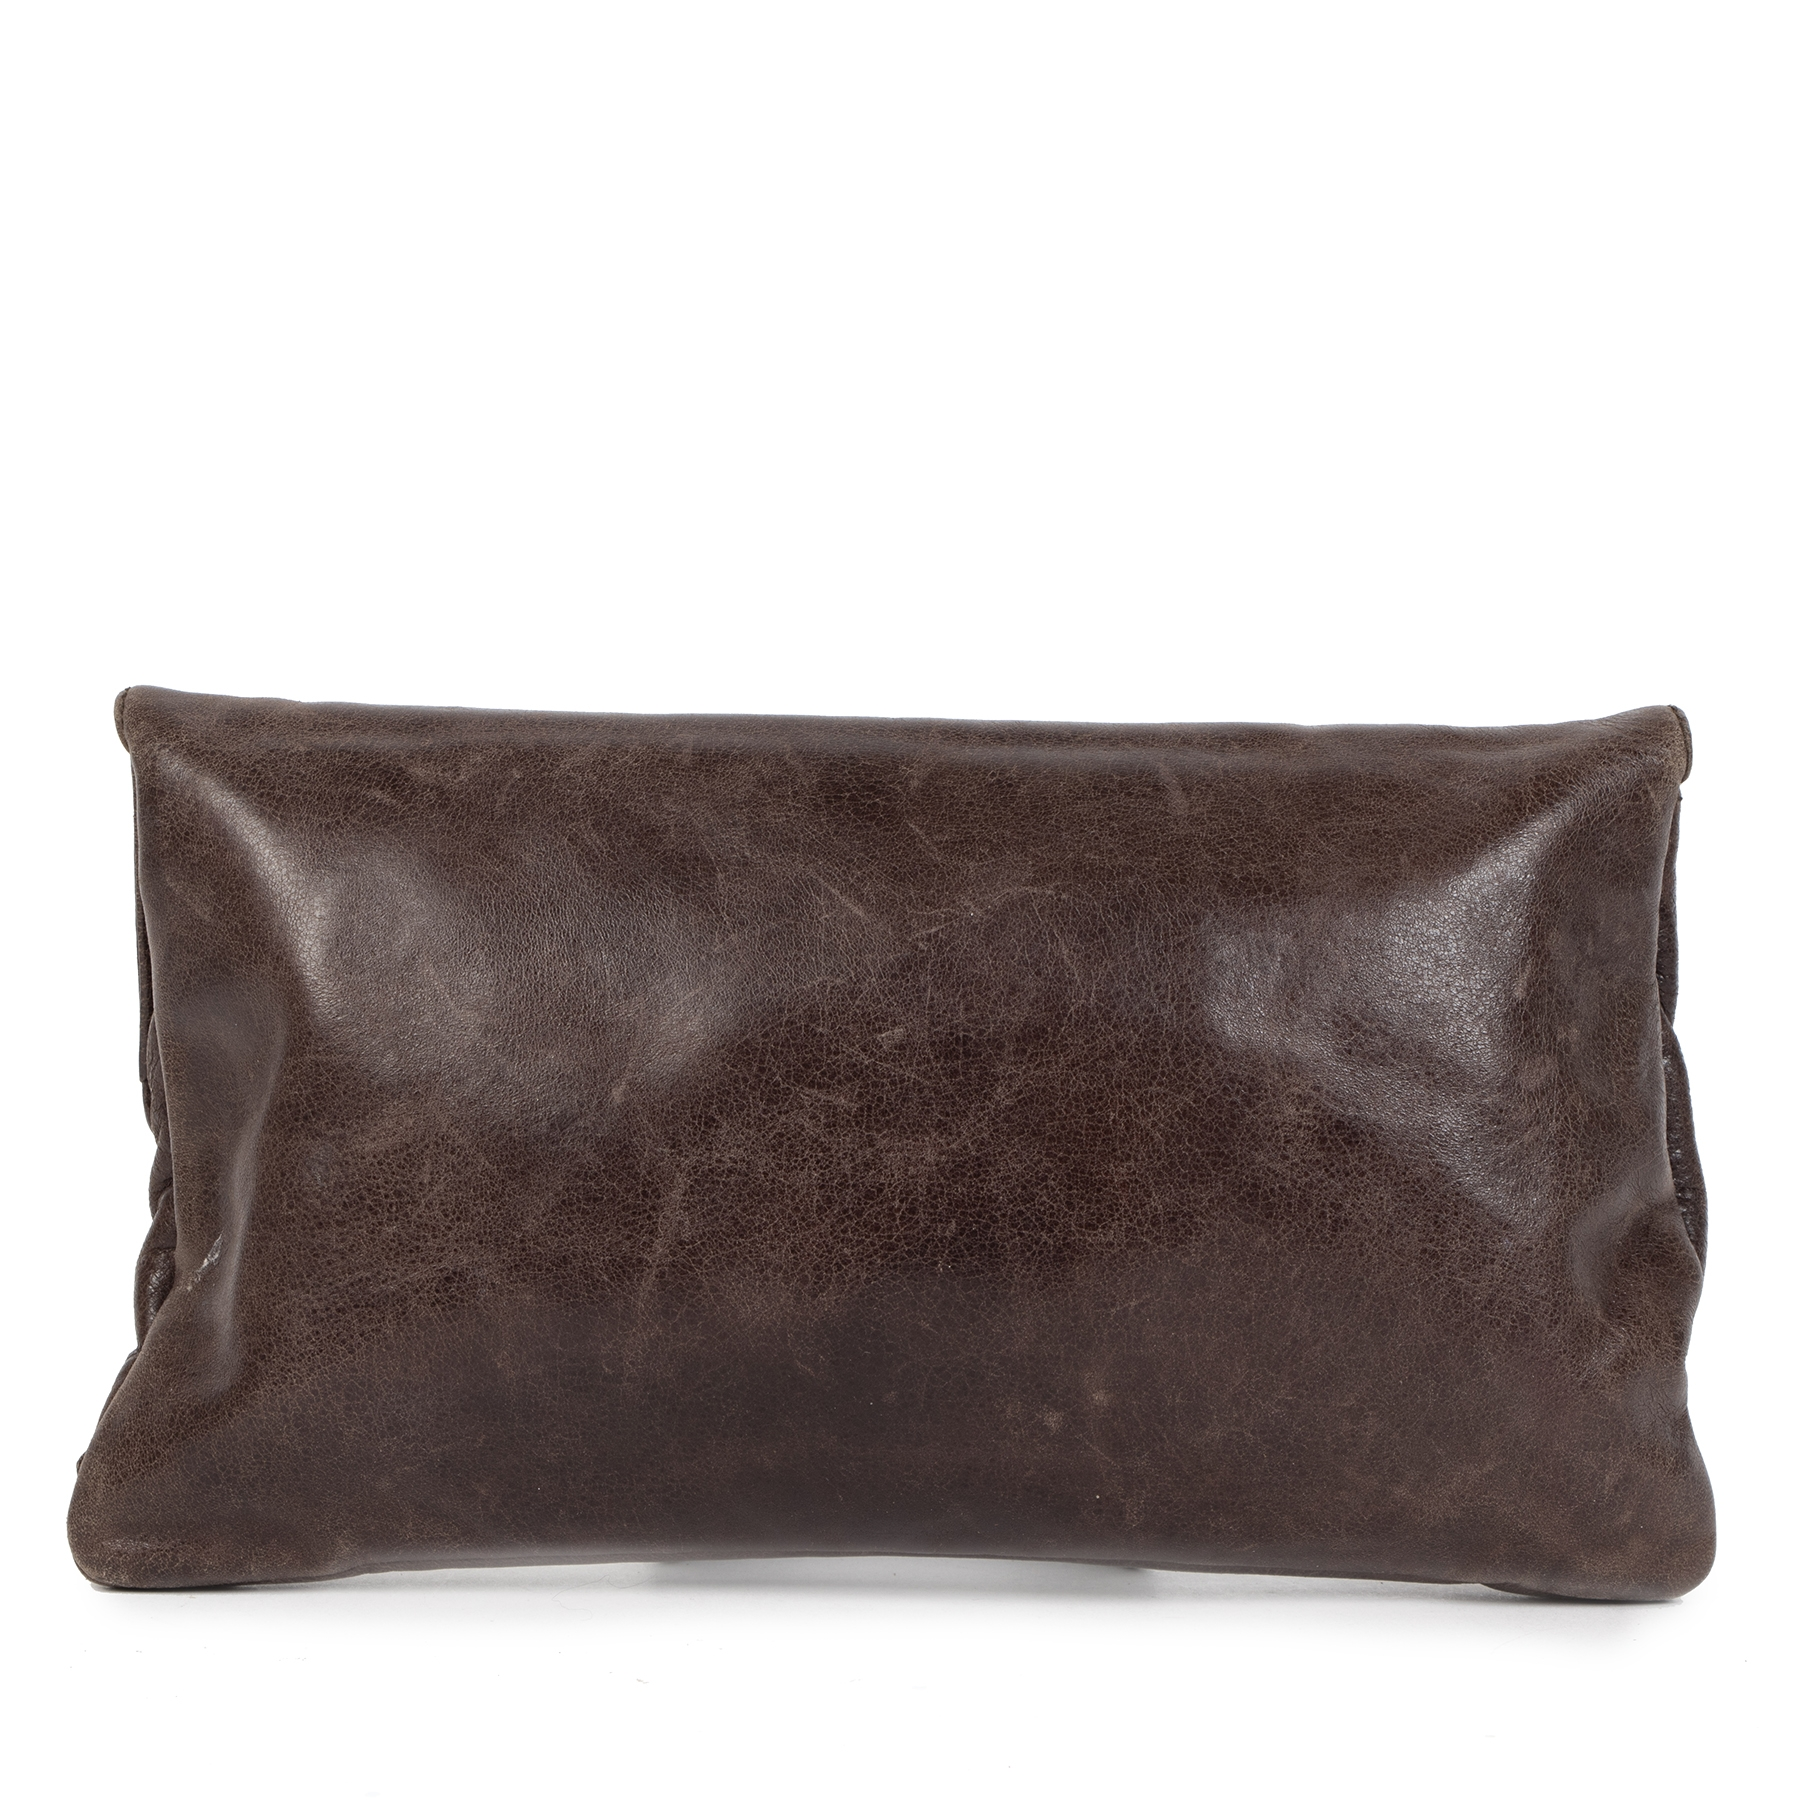 Authentic secondhand Balenciaga Giant 12 Envelope Clutch Brown designer bags designer brands fashion luxury vintage webshop Antwerp Belgium safe secure online shopping worldwide shipping delivery